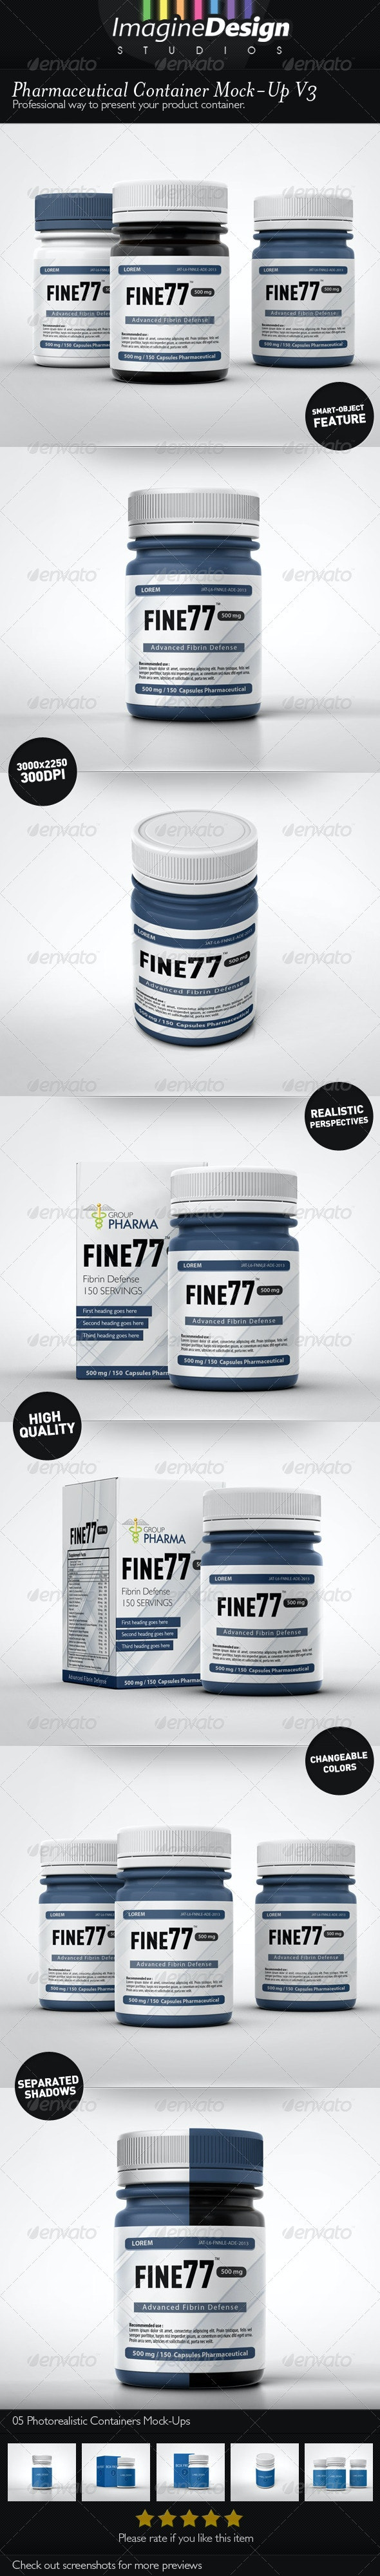 Pharmaceutical Container Mock-Up V3 - Packaging Product Mock-Ups